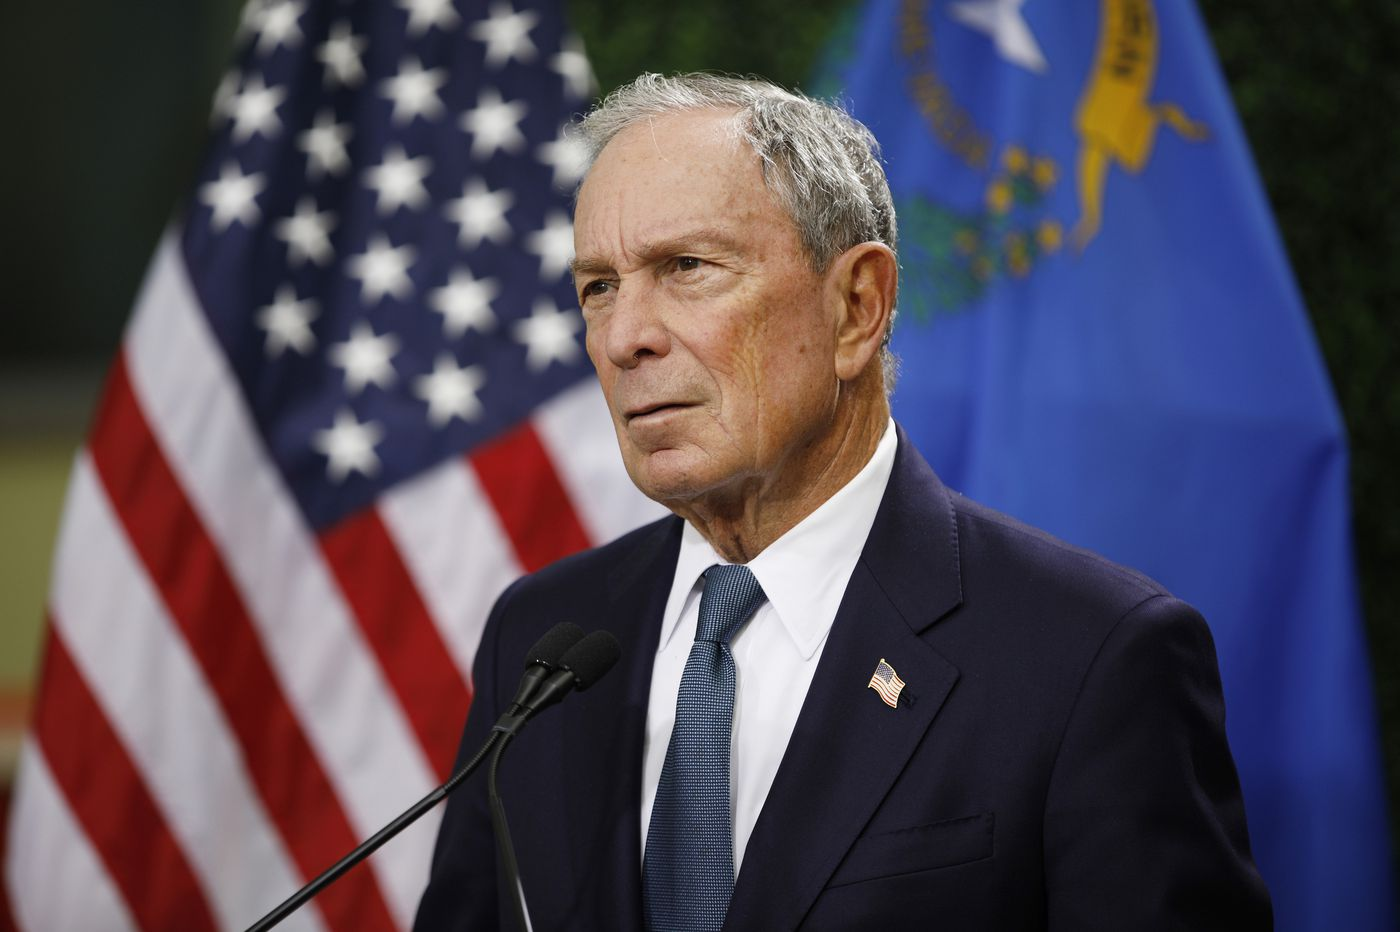 Bloomberg apologizes for 'stop and frisk' police practice